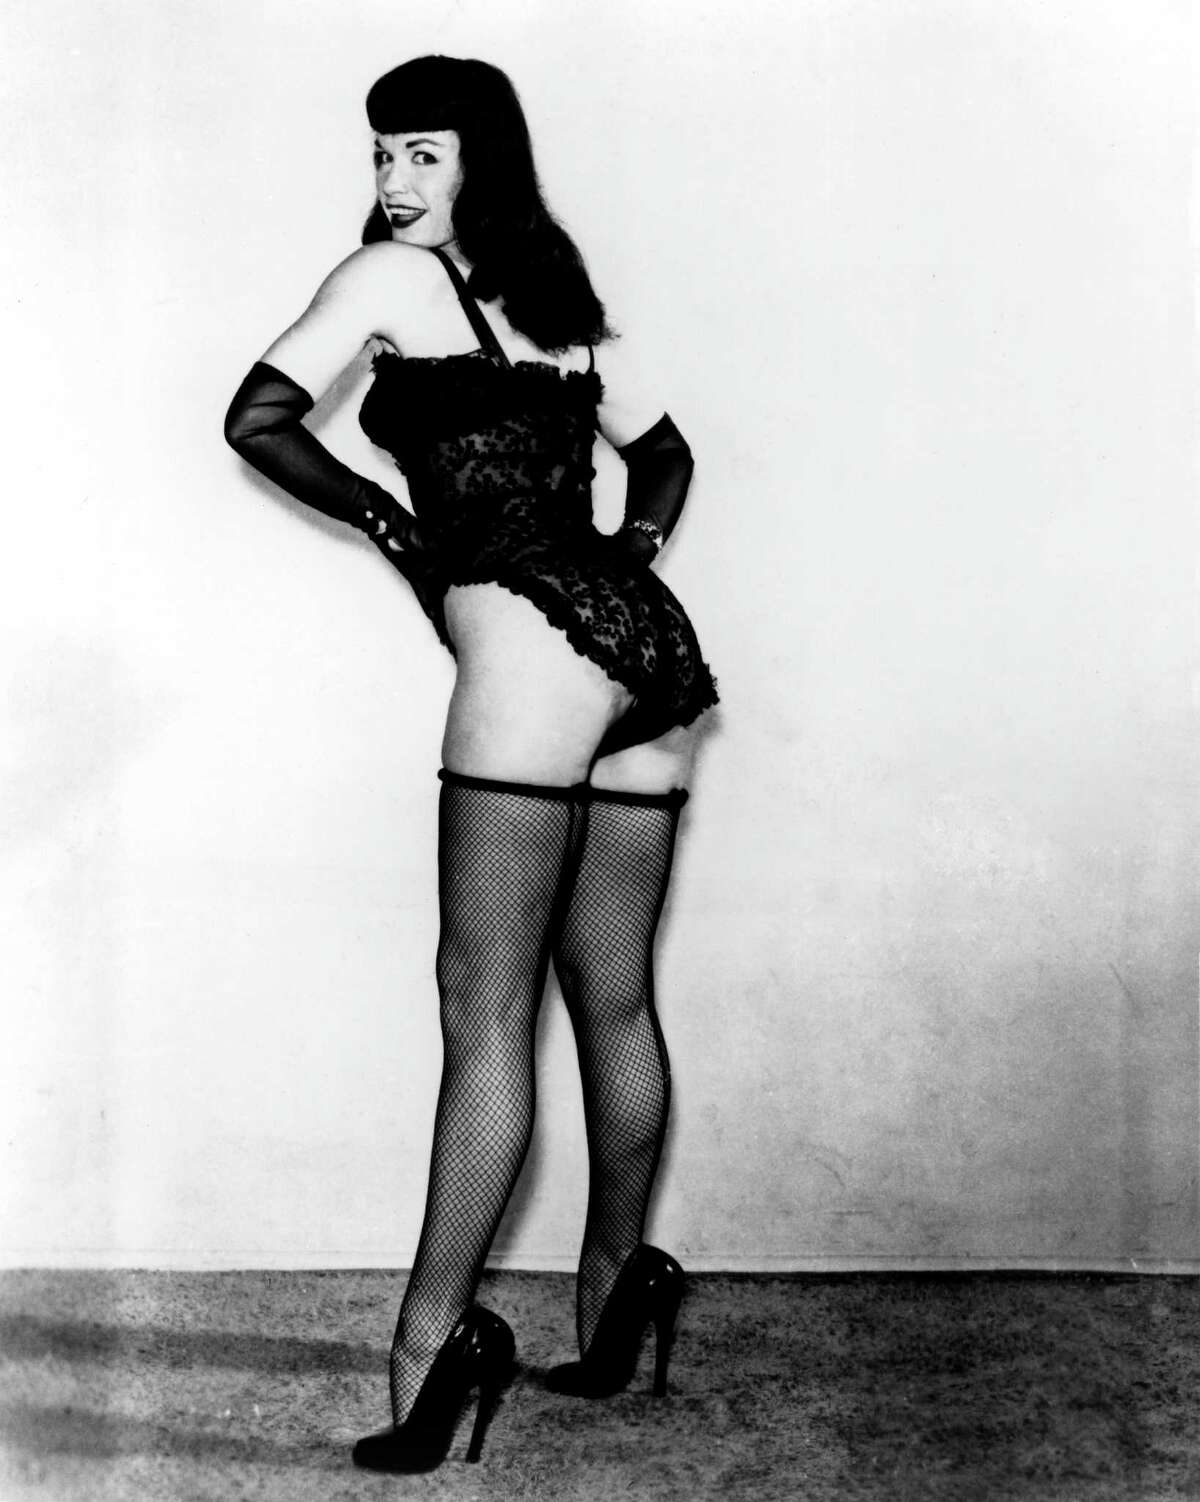 CIRCA 1952: Pin-up model Bettie Page poses for a portrait wearing lingerie in circa 1952.